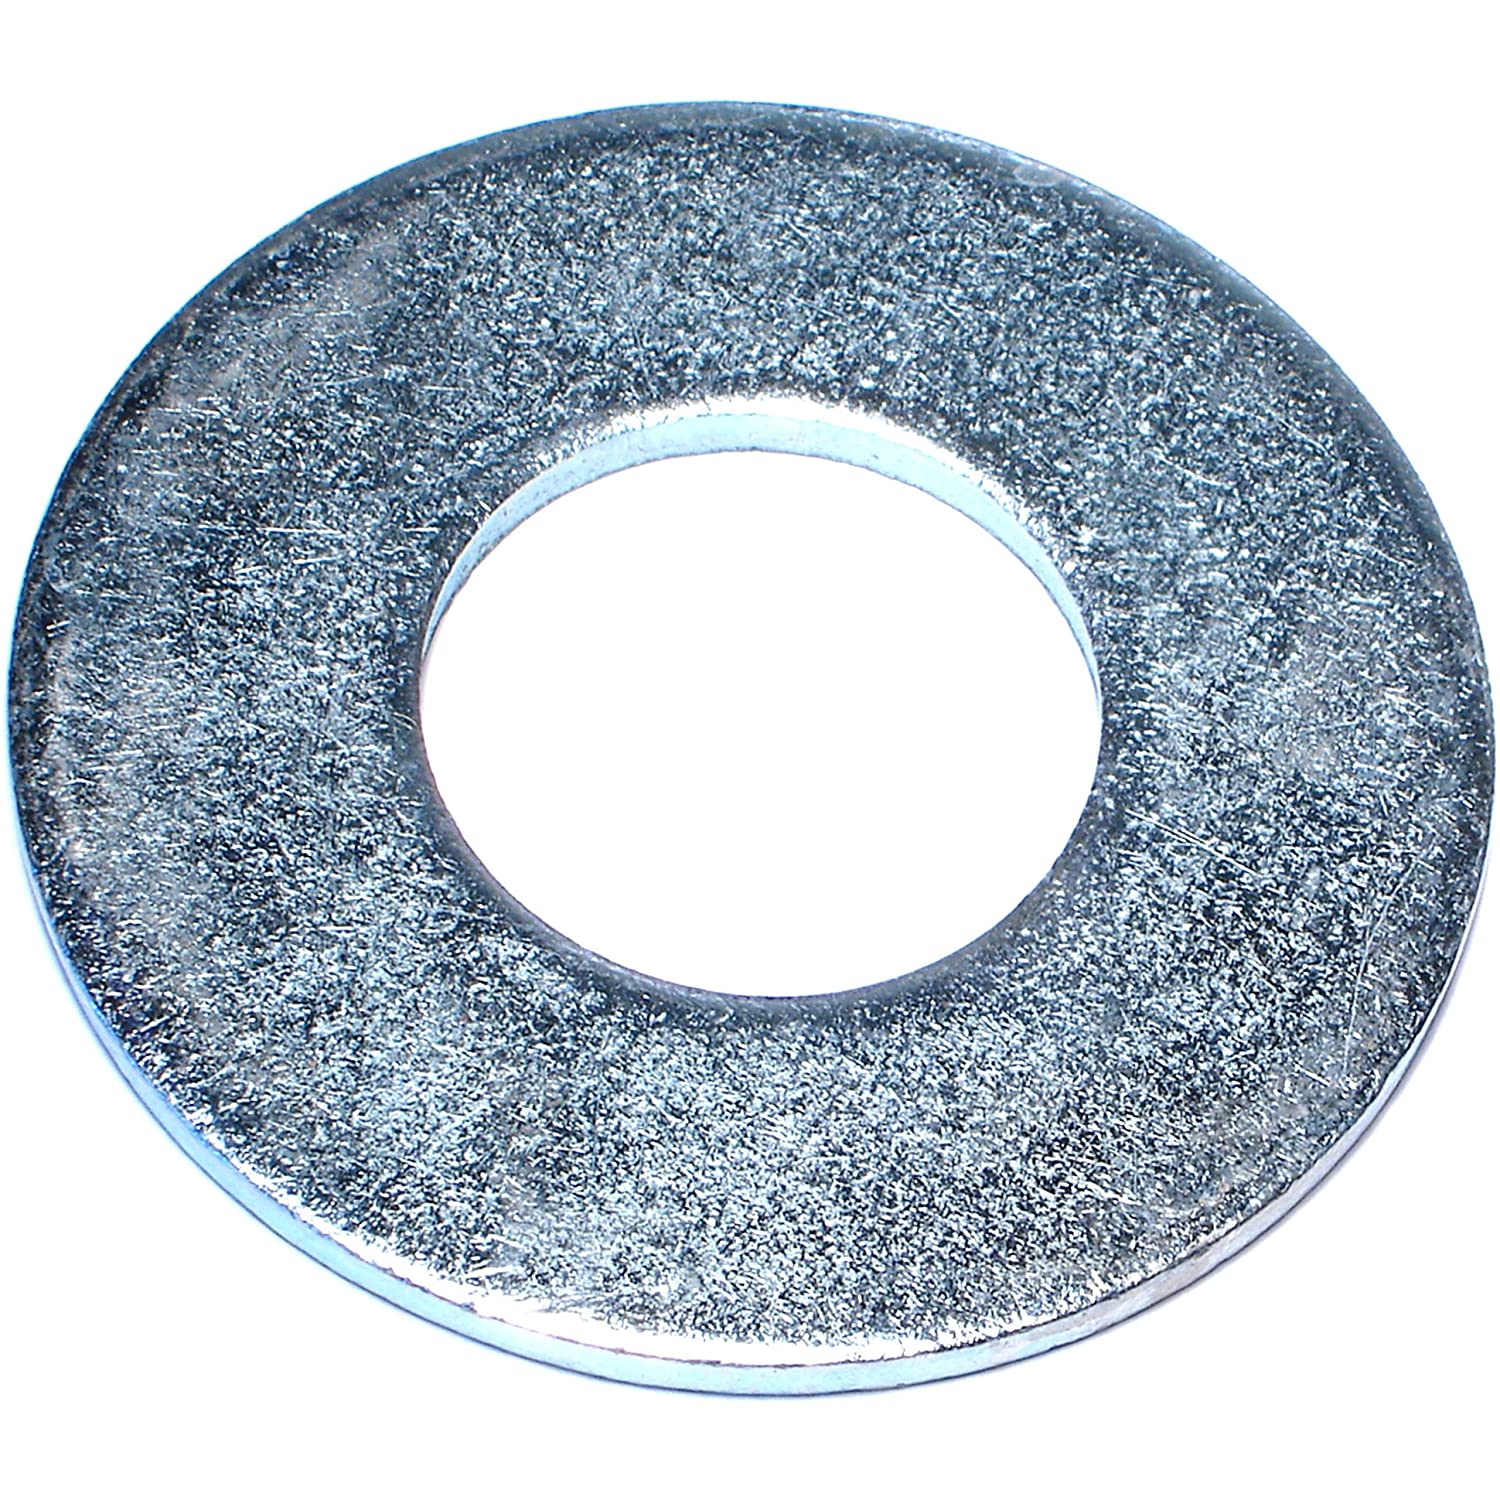 Zinc Plated Hard-to-Find Fastener 014973325398 Midwest 3847 Uss Flat Washer 1-1//4 In